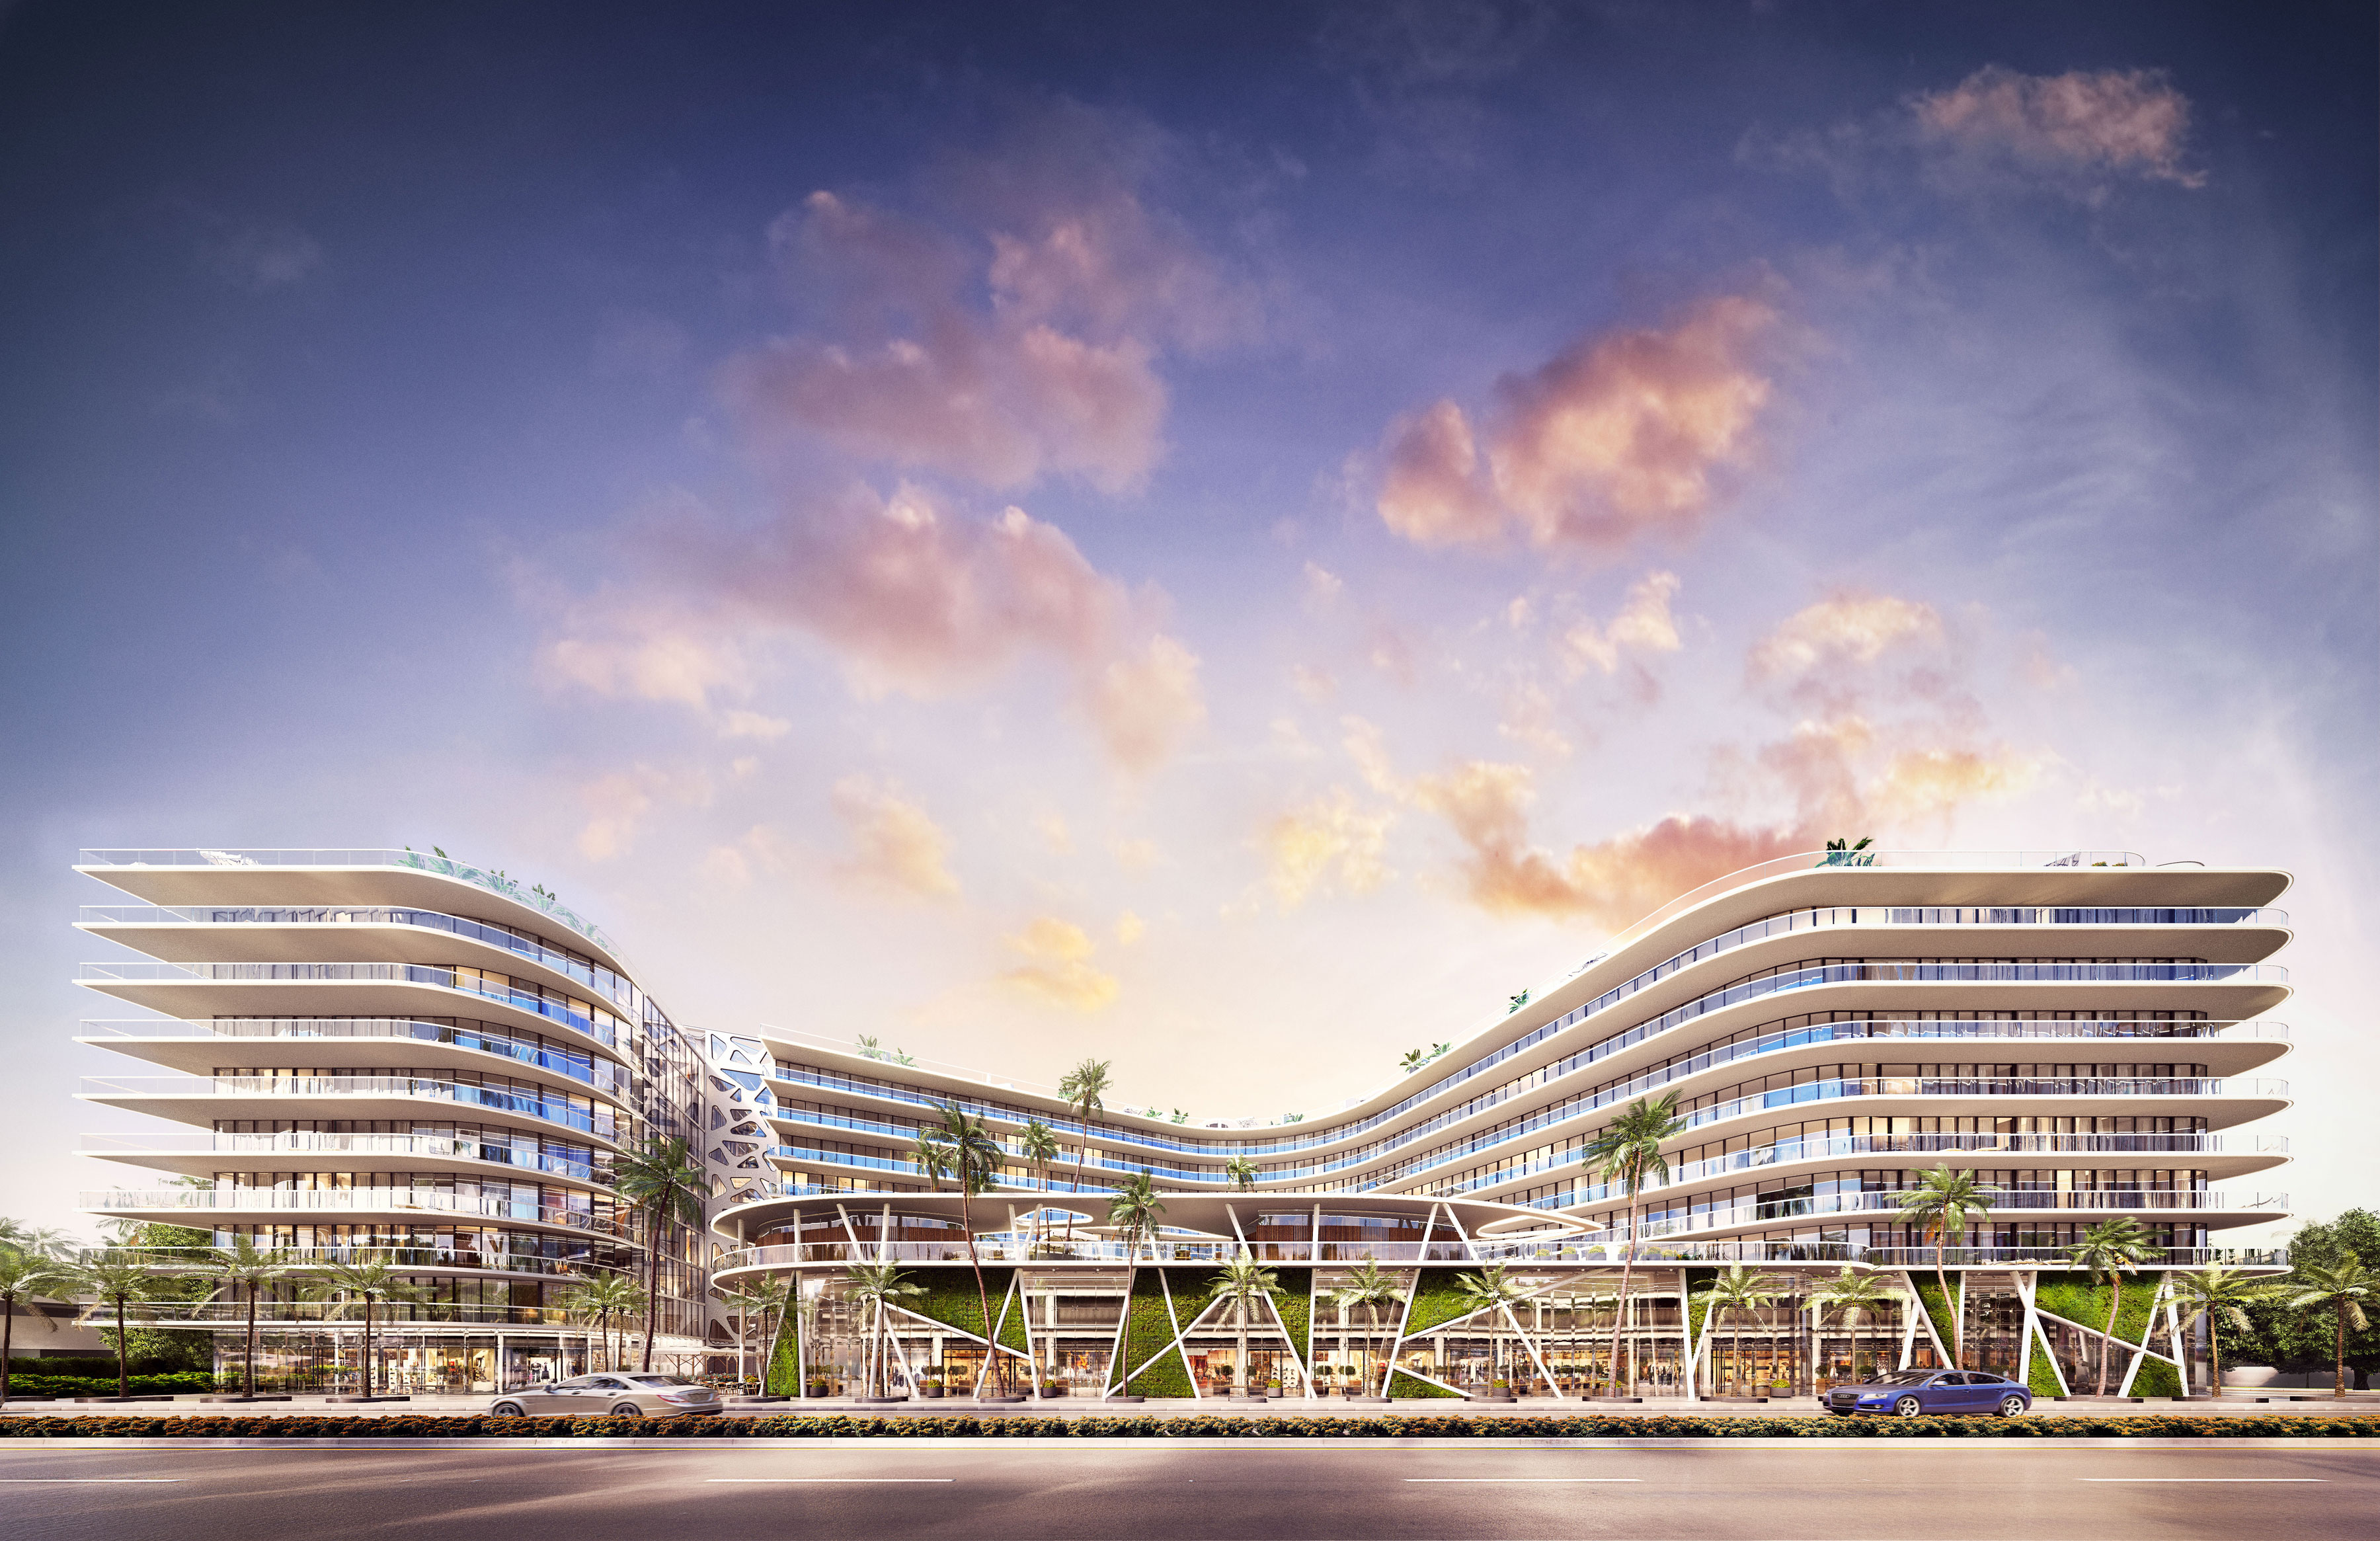 for Sale at Boulevard 57 5700 Biscayne Blvd 508w Miami, Florida, 33137 United States